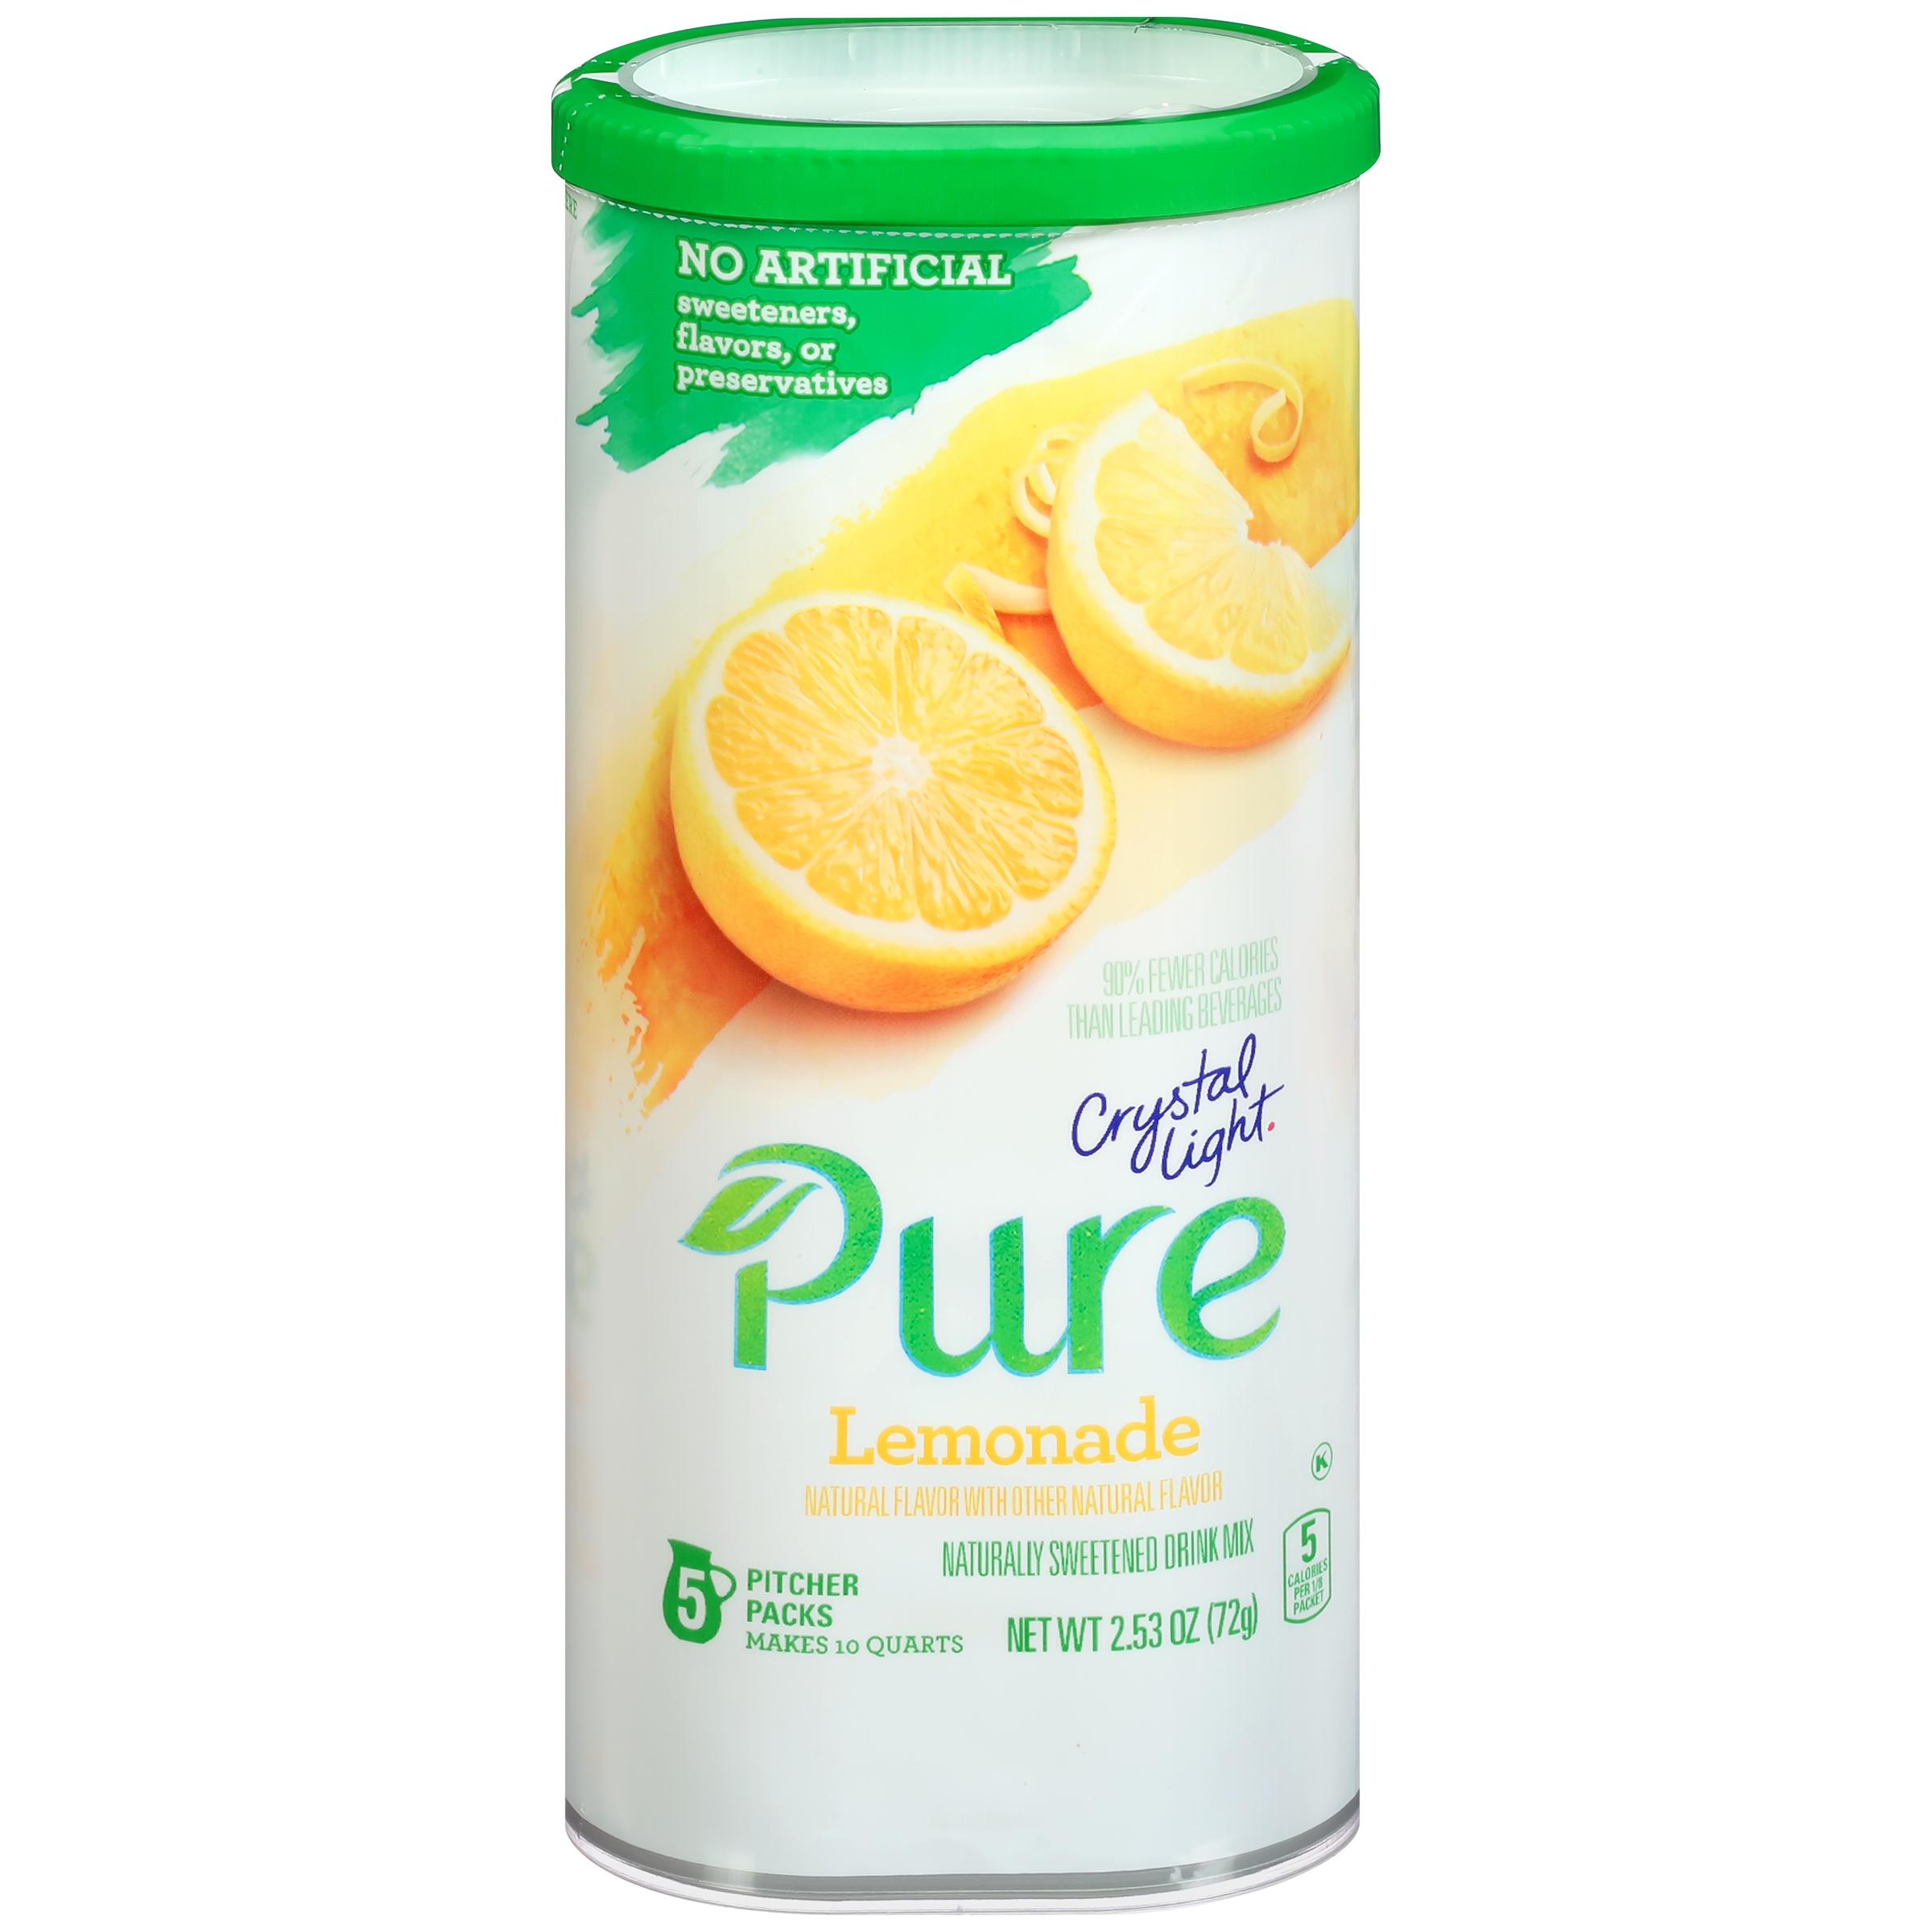 Crystal Light Pure Lemonade Drink Mix 5 ct Canister